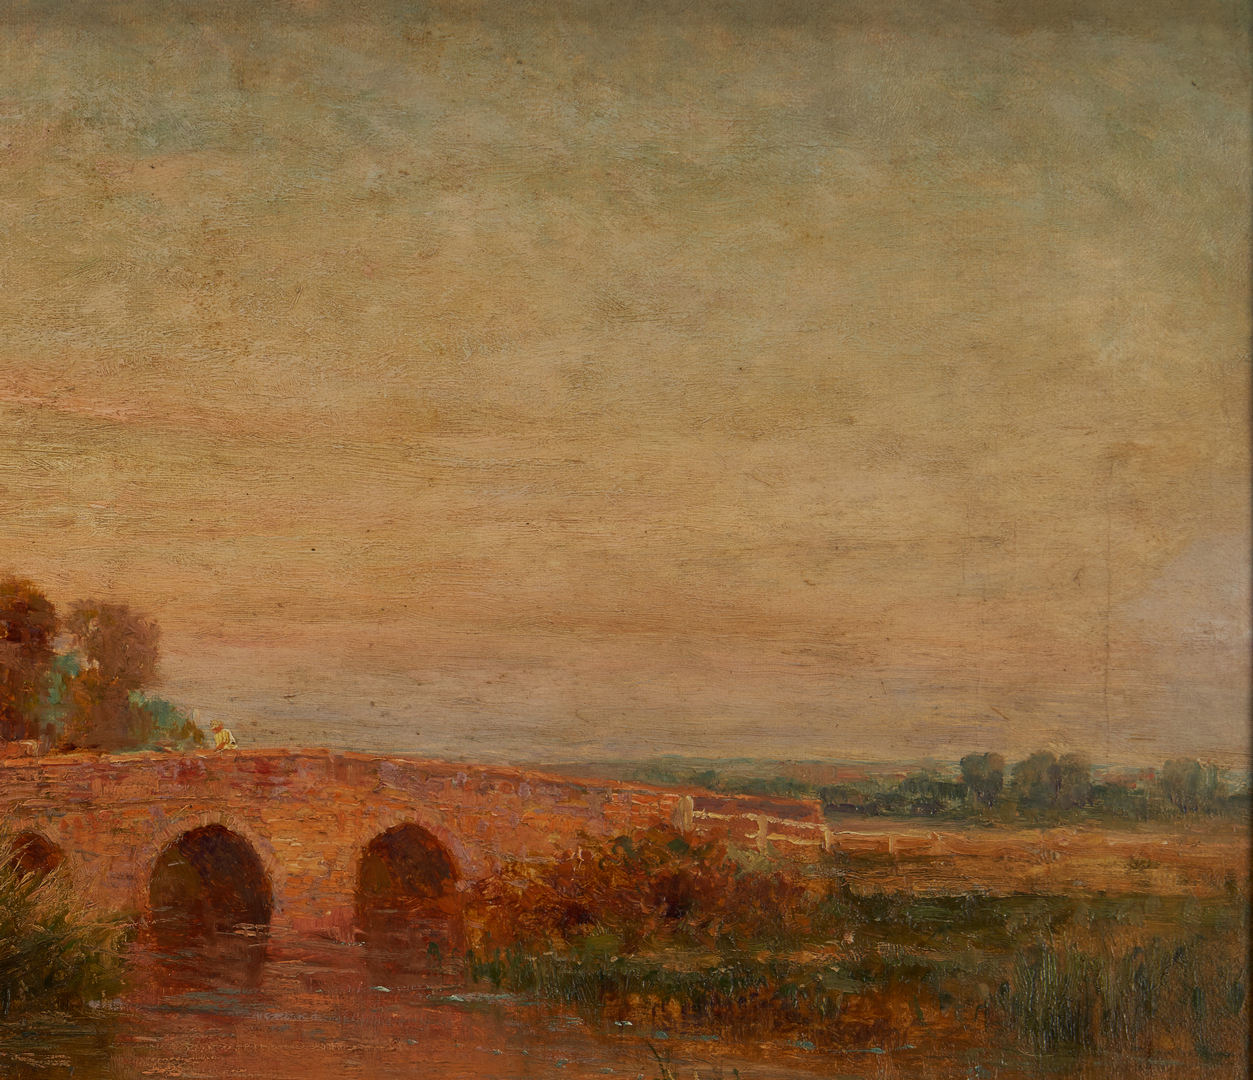 Lot 116: Ernest Walbourn O/C, English Landscape with Figure and Ducks